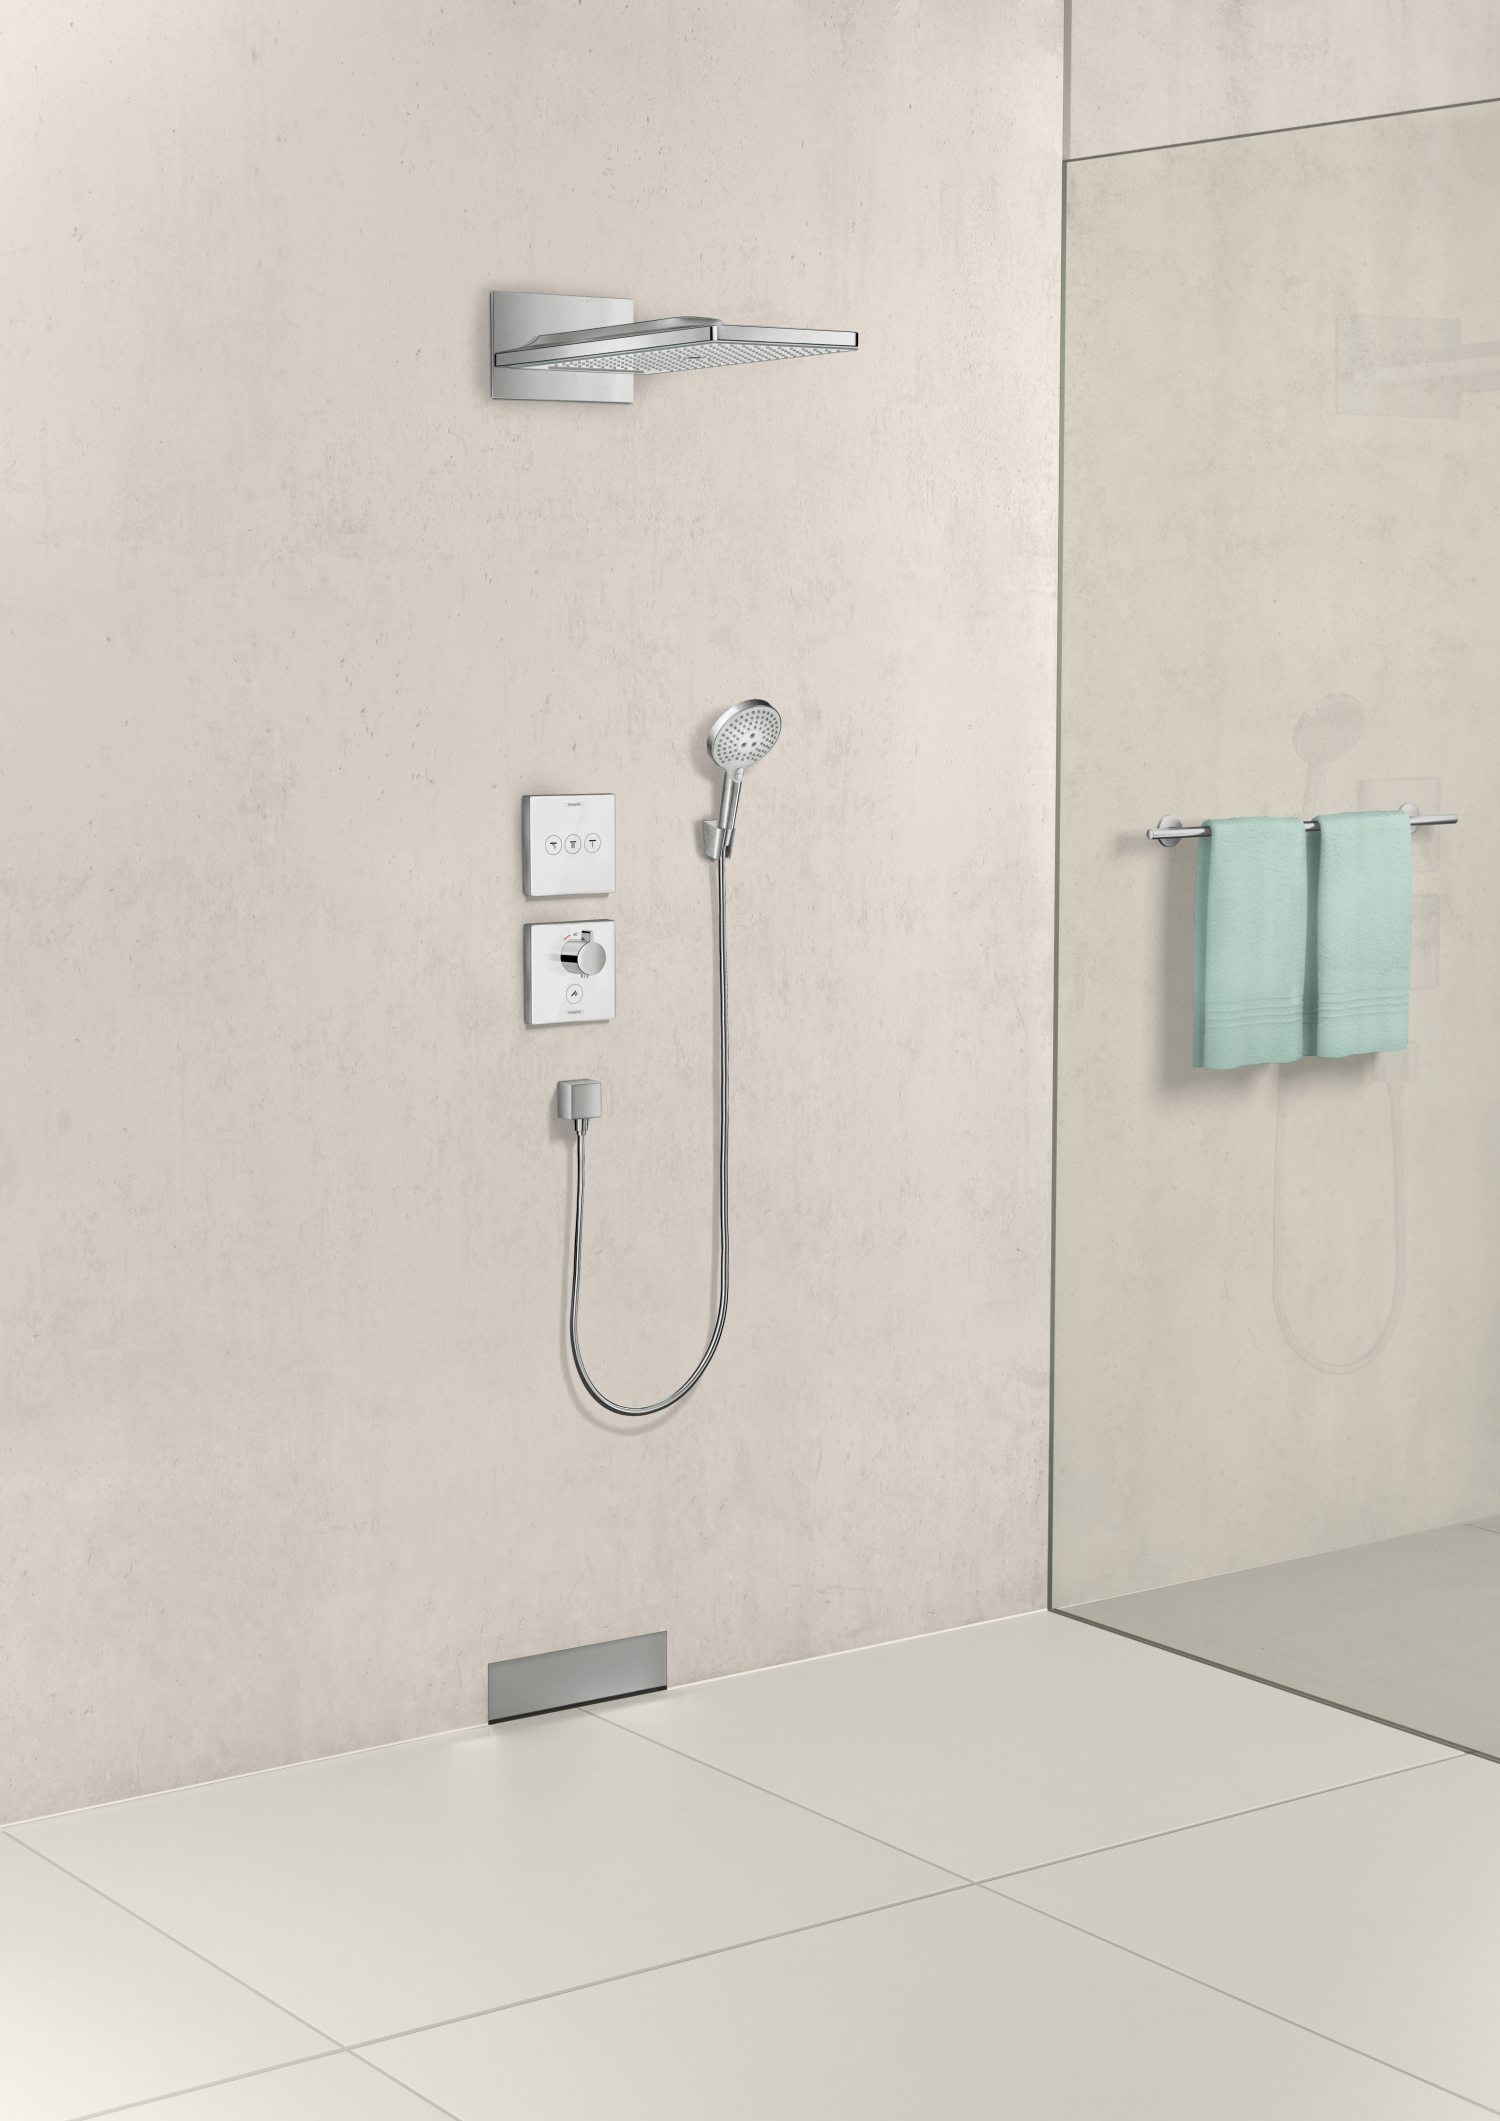 hansgrohe impero showroom lublin radom imperocompl